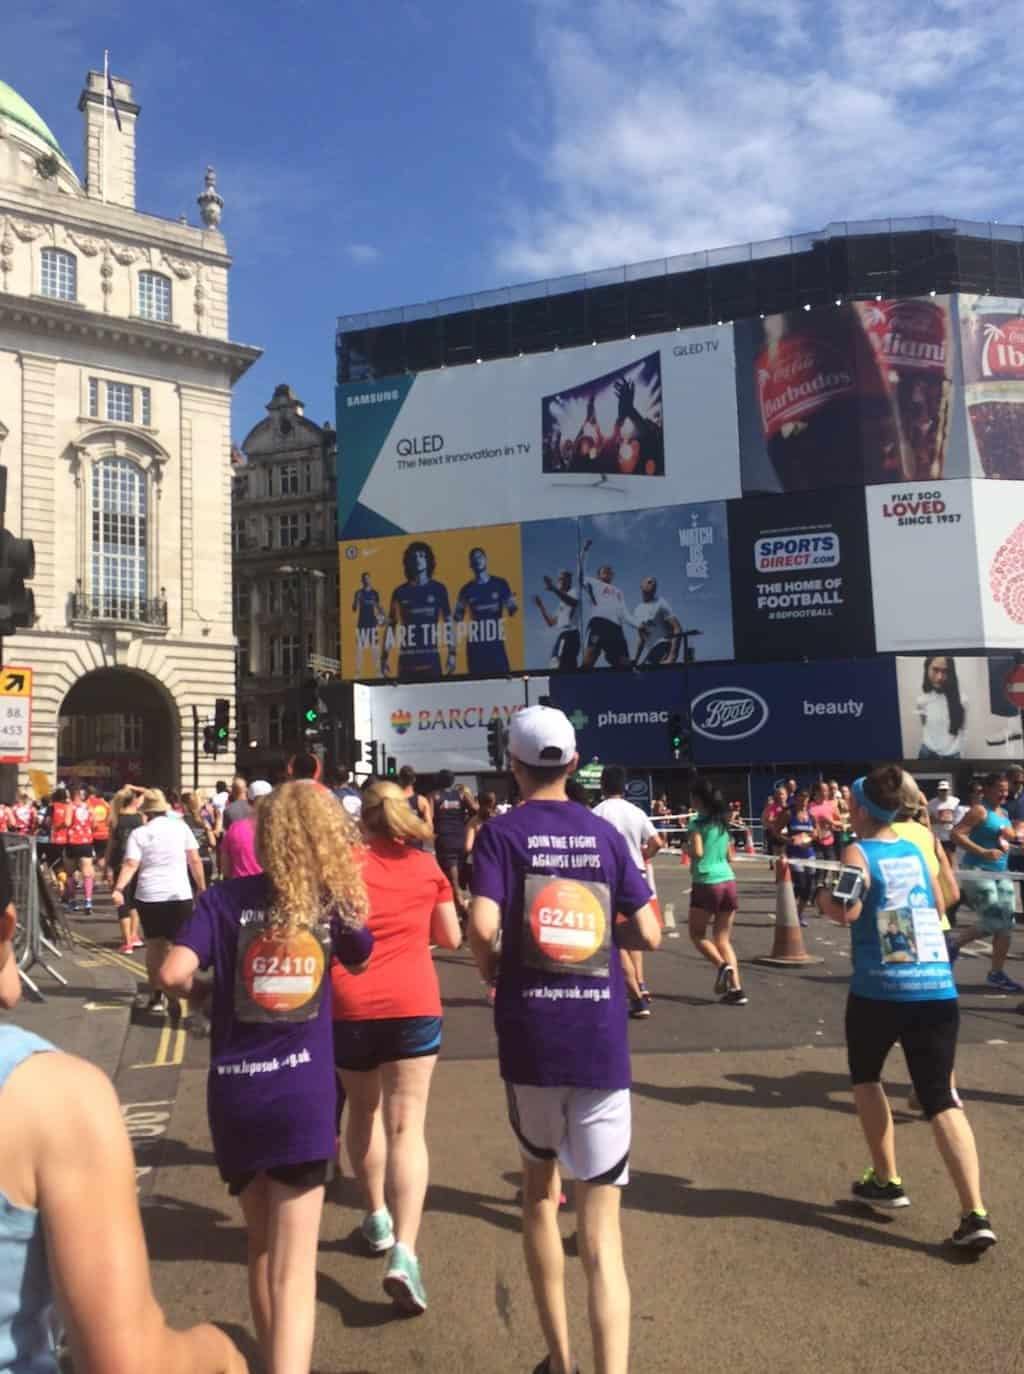 Running the British 10K: A Tale of Sweat and Kelly Clarkson